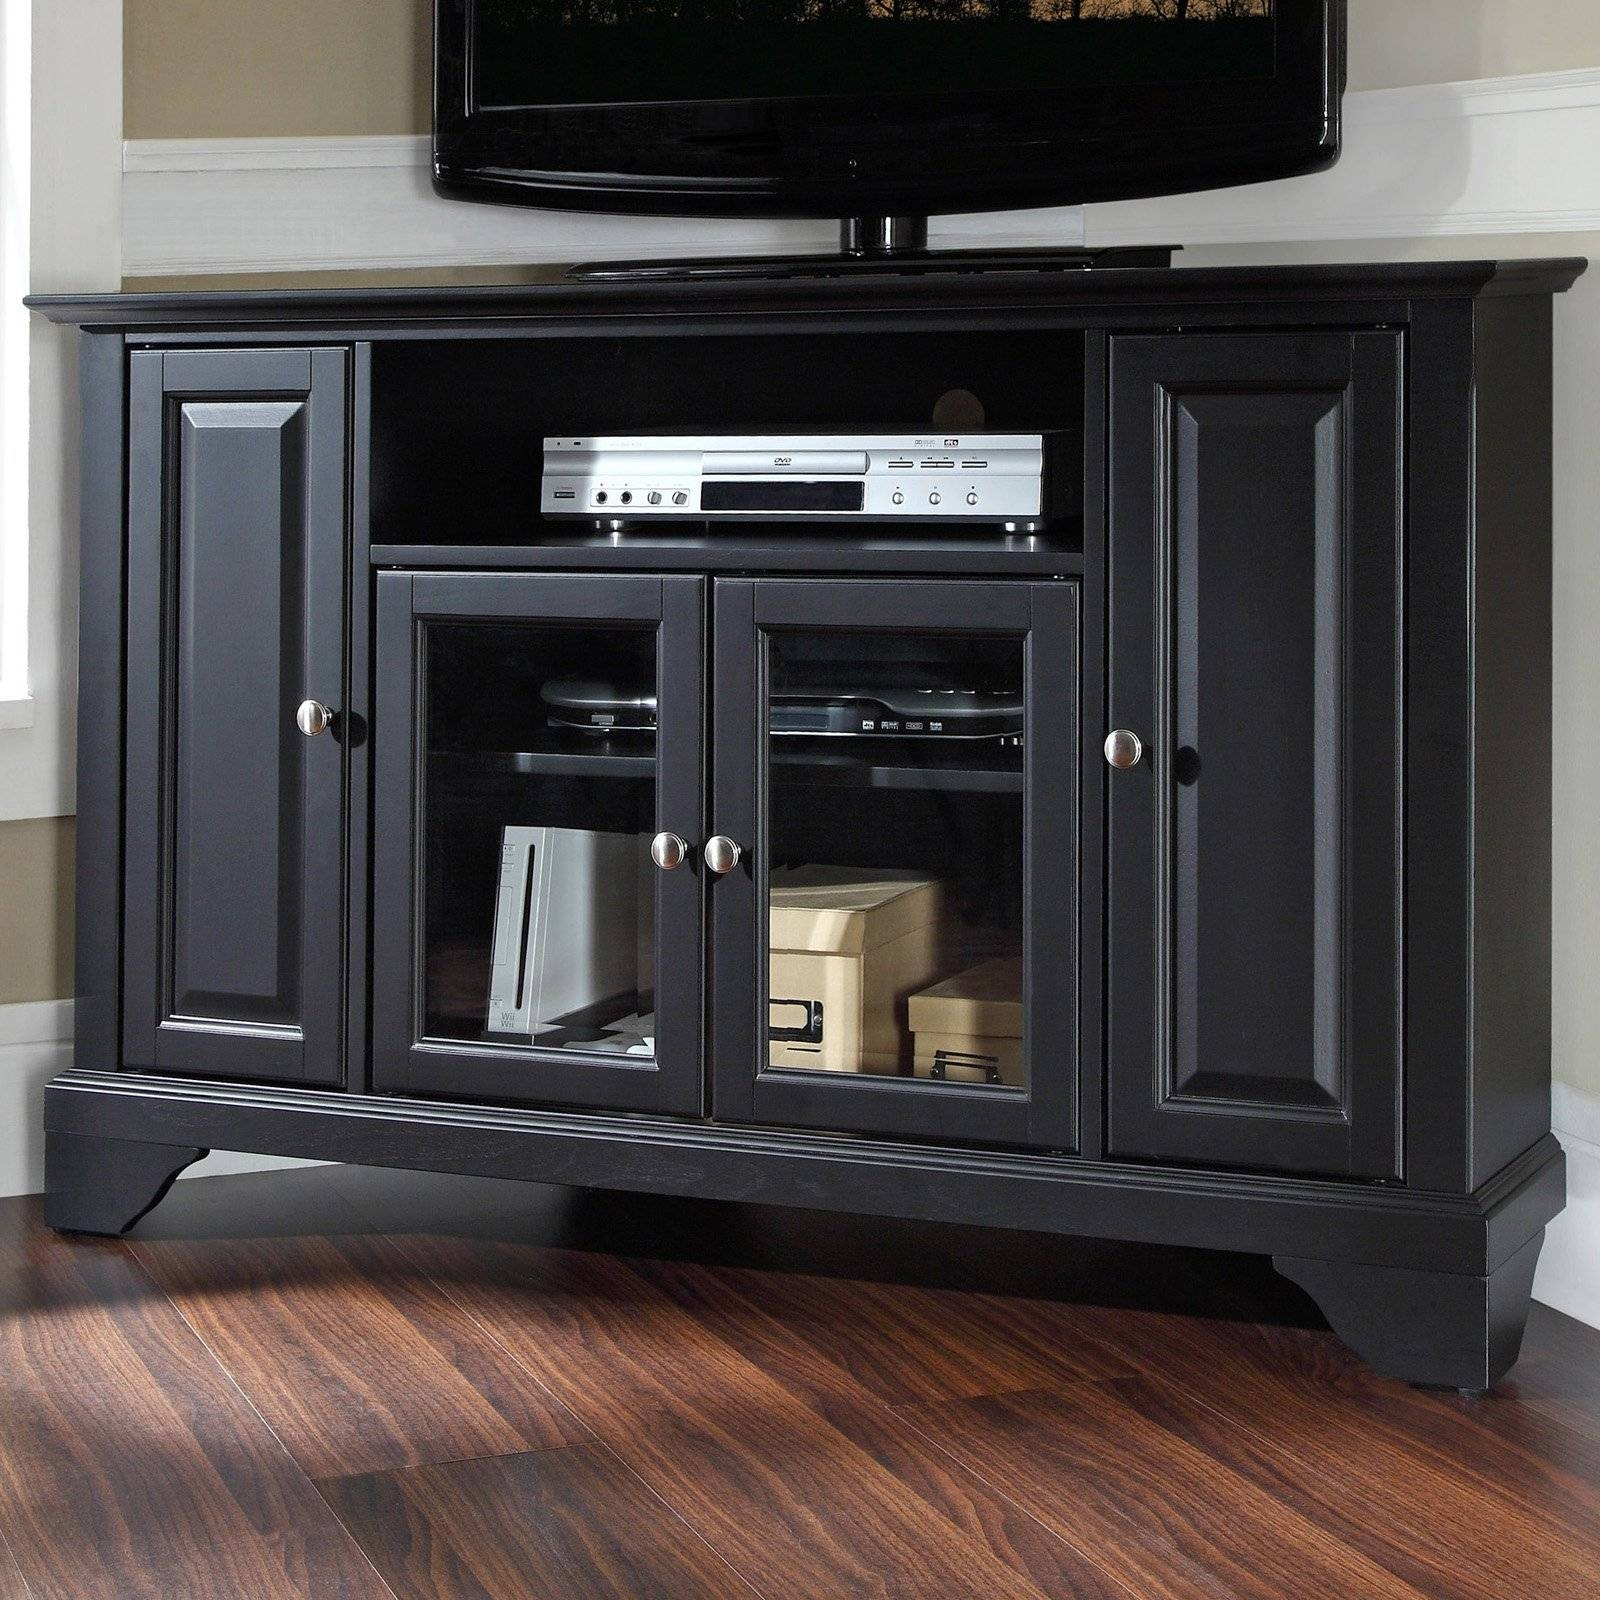 Charmful Sauder Black Tv Stand Sauder Tv Stand Black Home Design within Black Corner Tv Cabinets (Image 2 of 15)